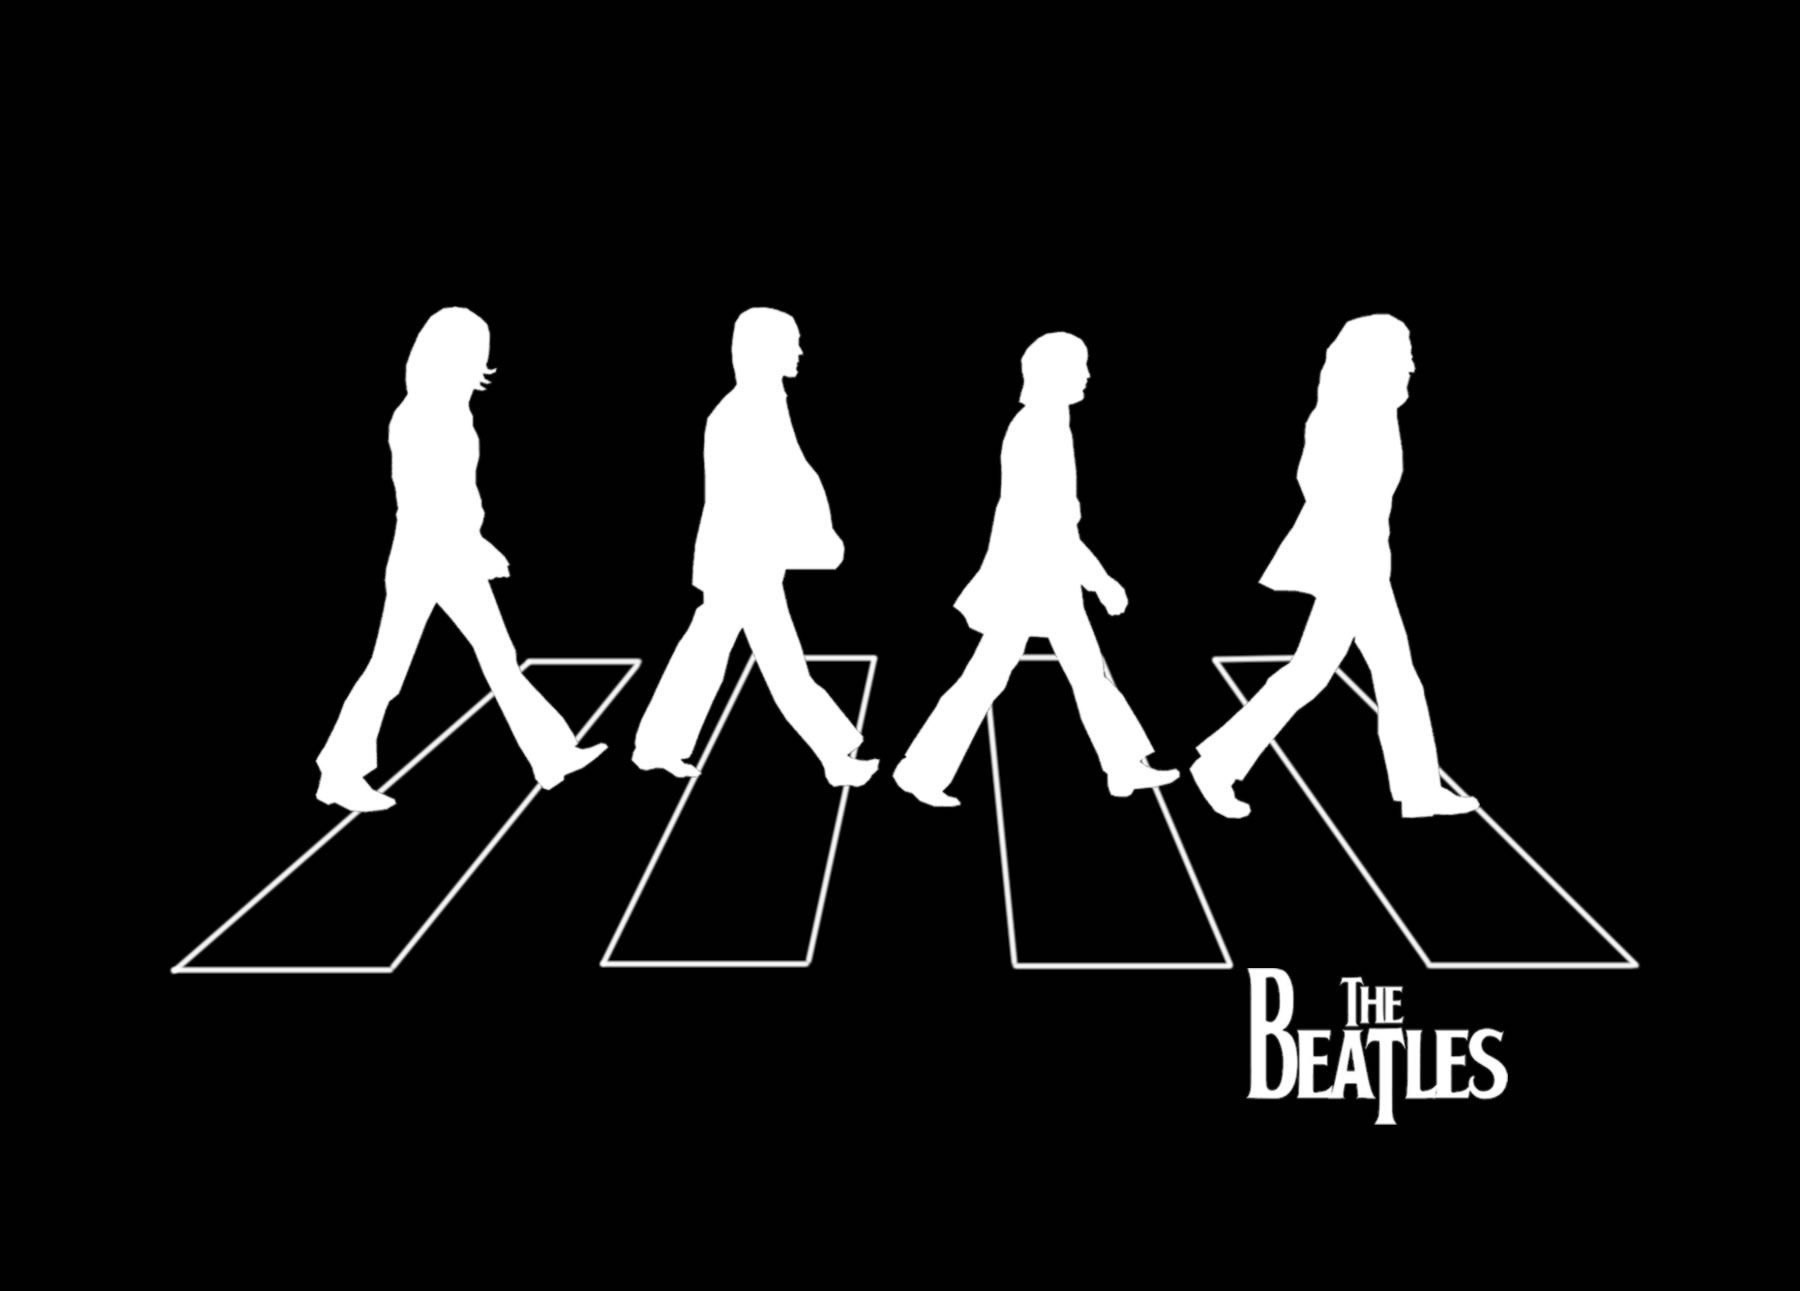 The Beatles Hd Wallpapers Backgrounds Wallpaper In 2019